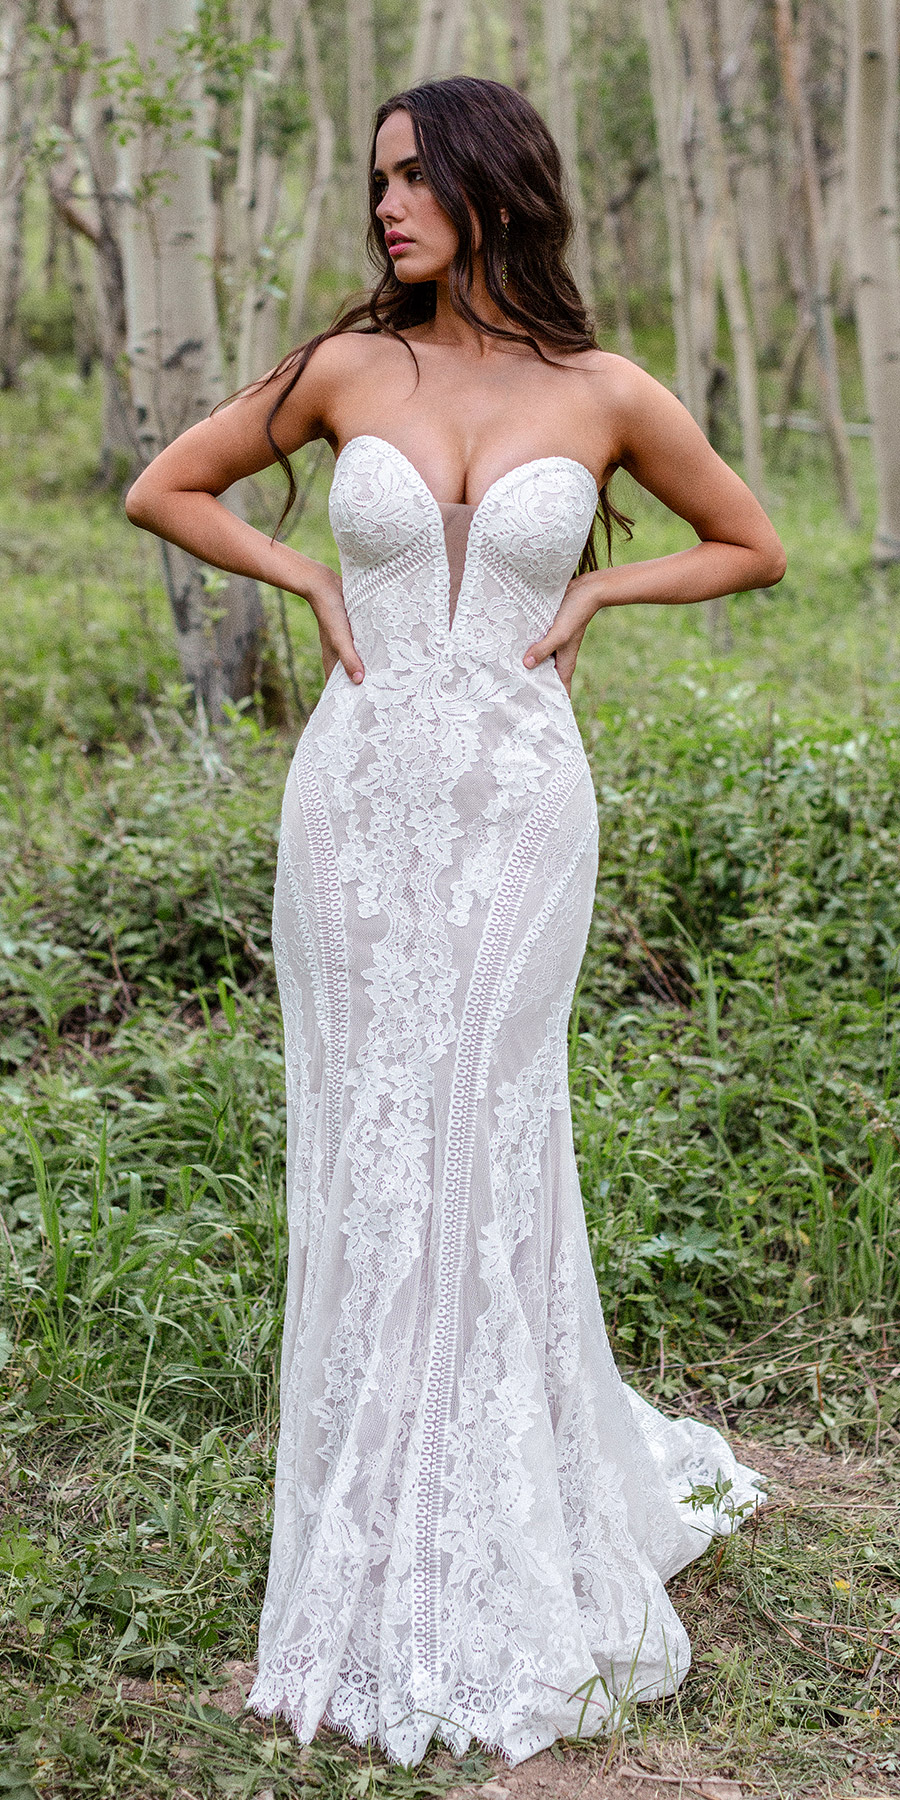 wilderly bride strapless sweetheart neckline fully embellished lace sheath wedding dress